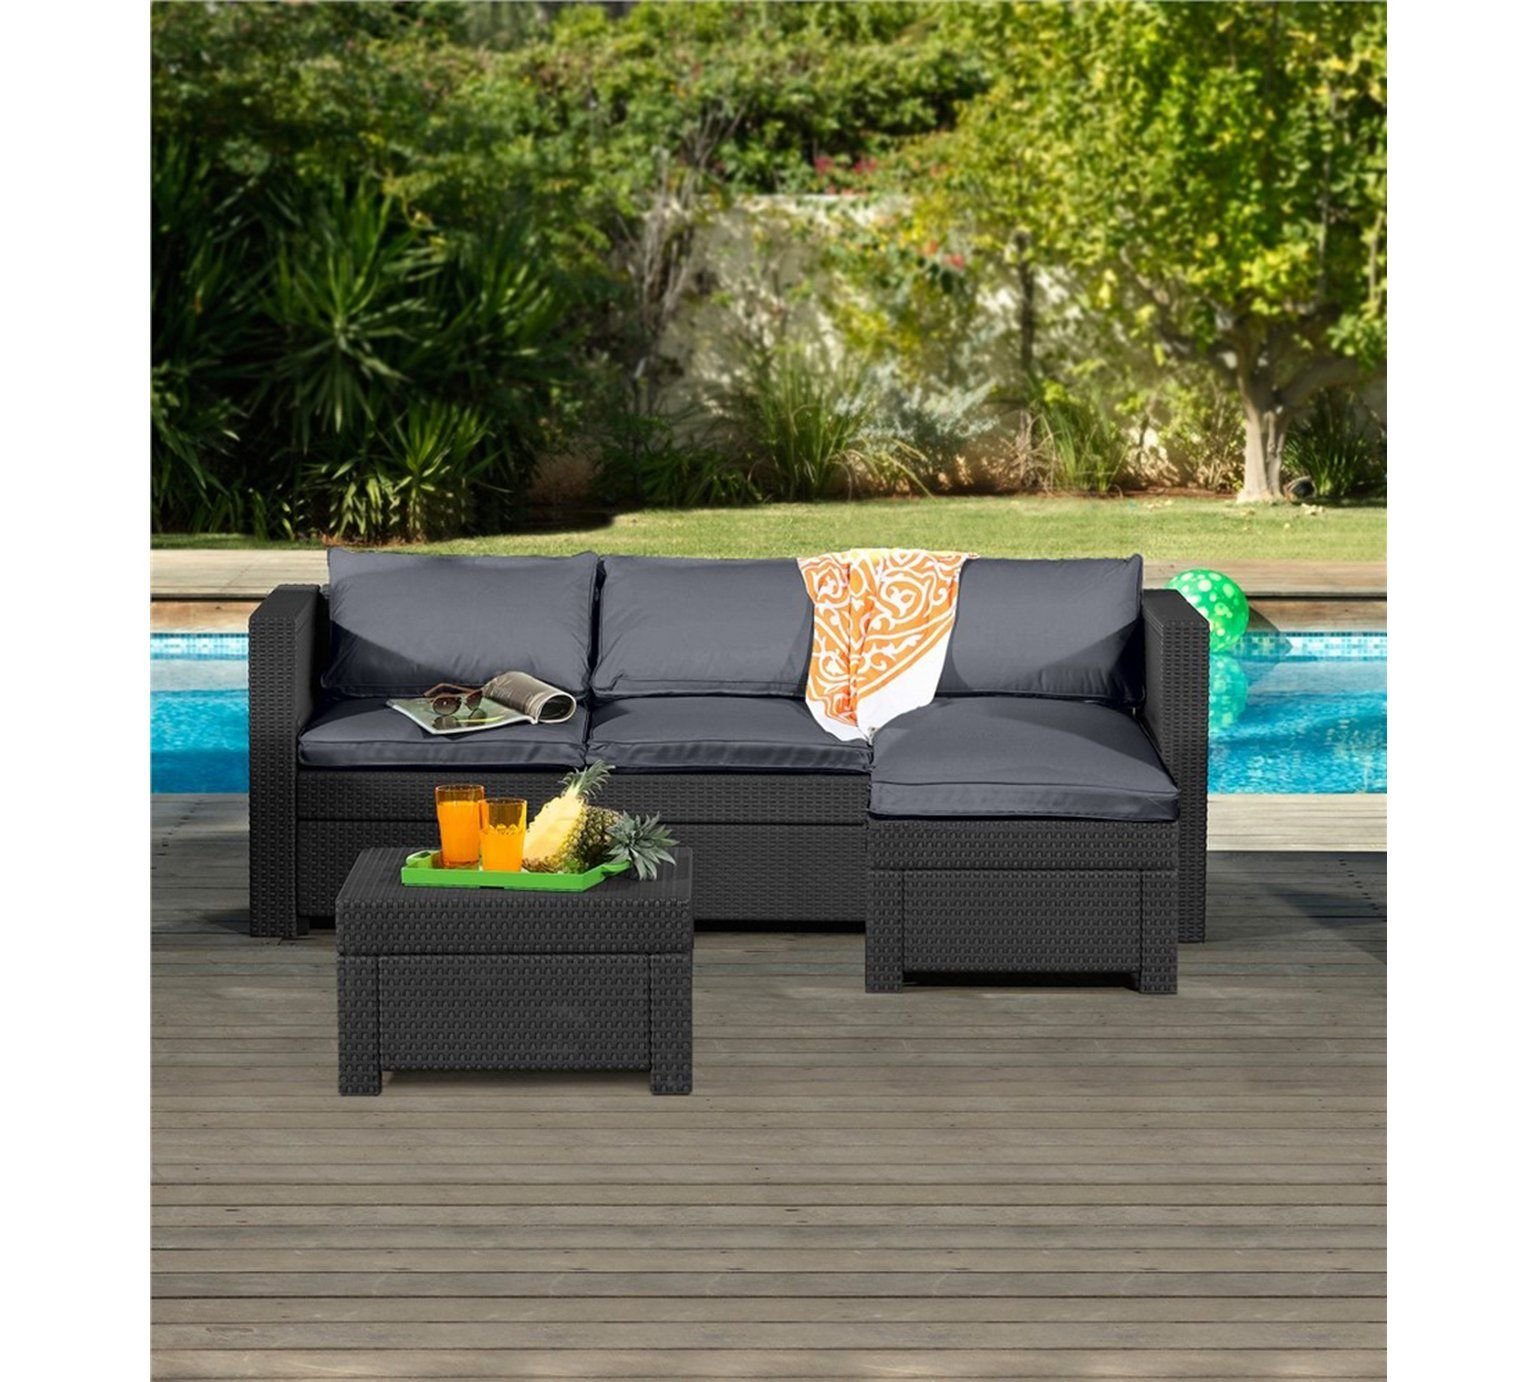 239 99 Buy Keter Rattan Effect Outdoor Mini Corner Sofa Graphite At Argos Co Uk Your O Rattan Effect Garden Furniture Corner Sofa Garden Outdoor Sofa Sets